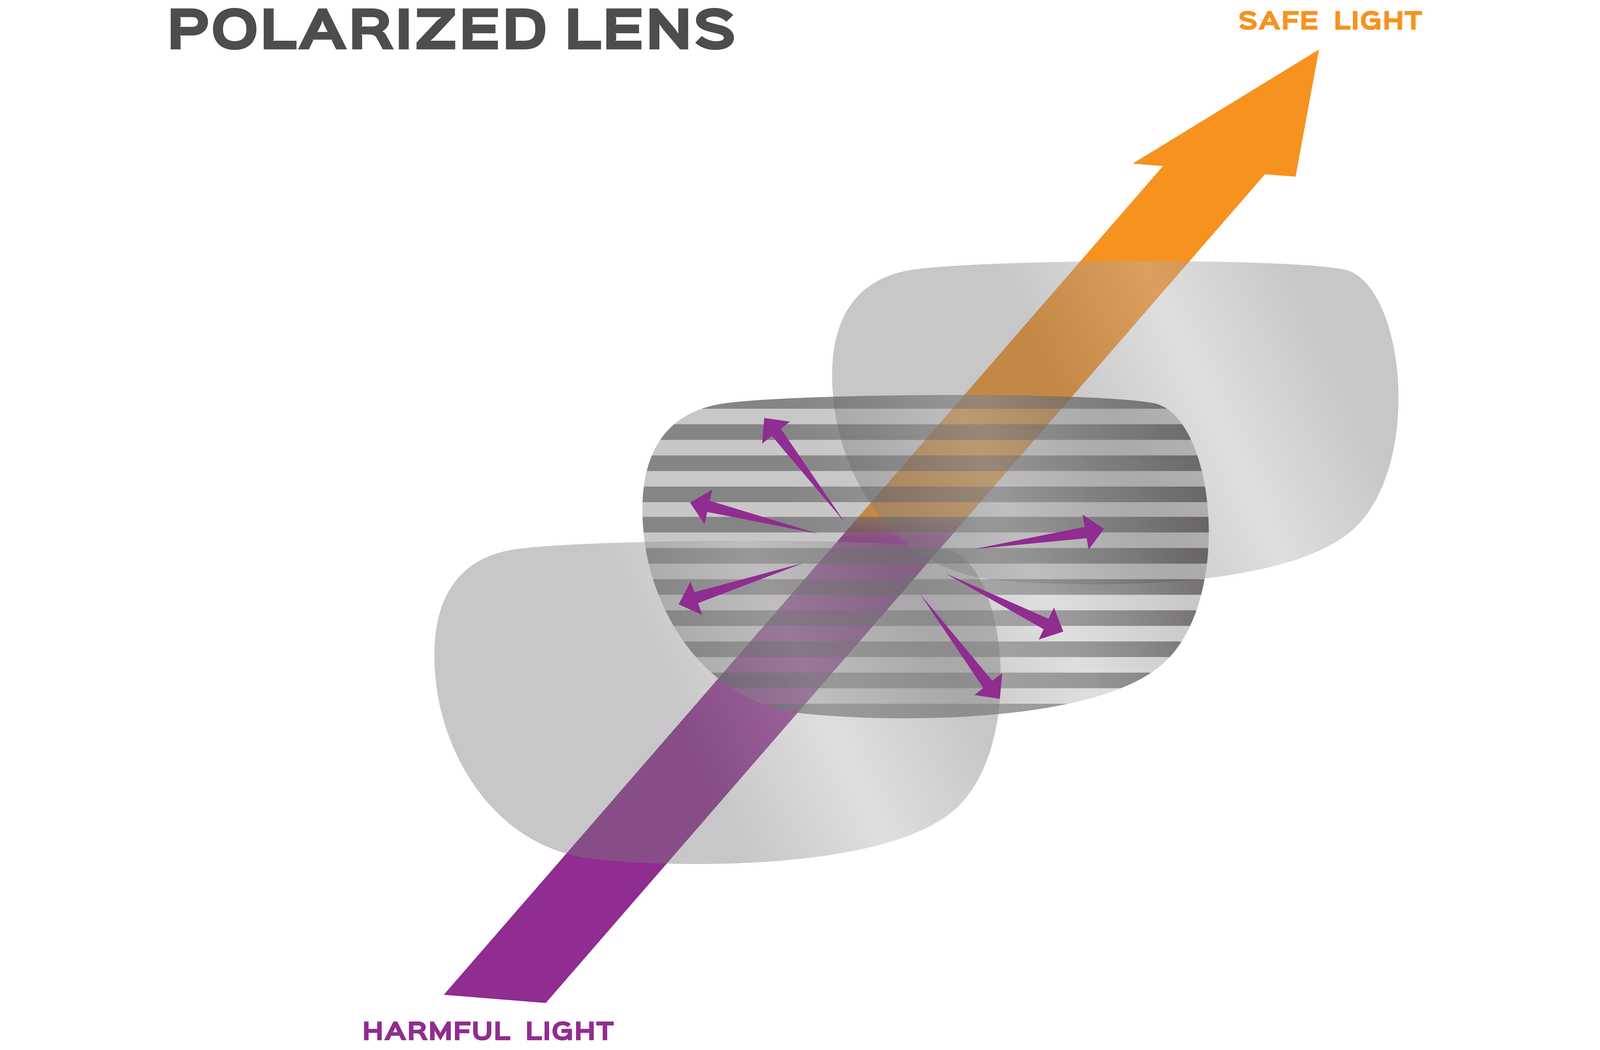 polarized lens technical visualization in orange and purple colours